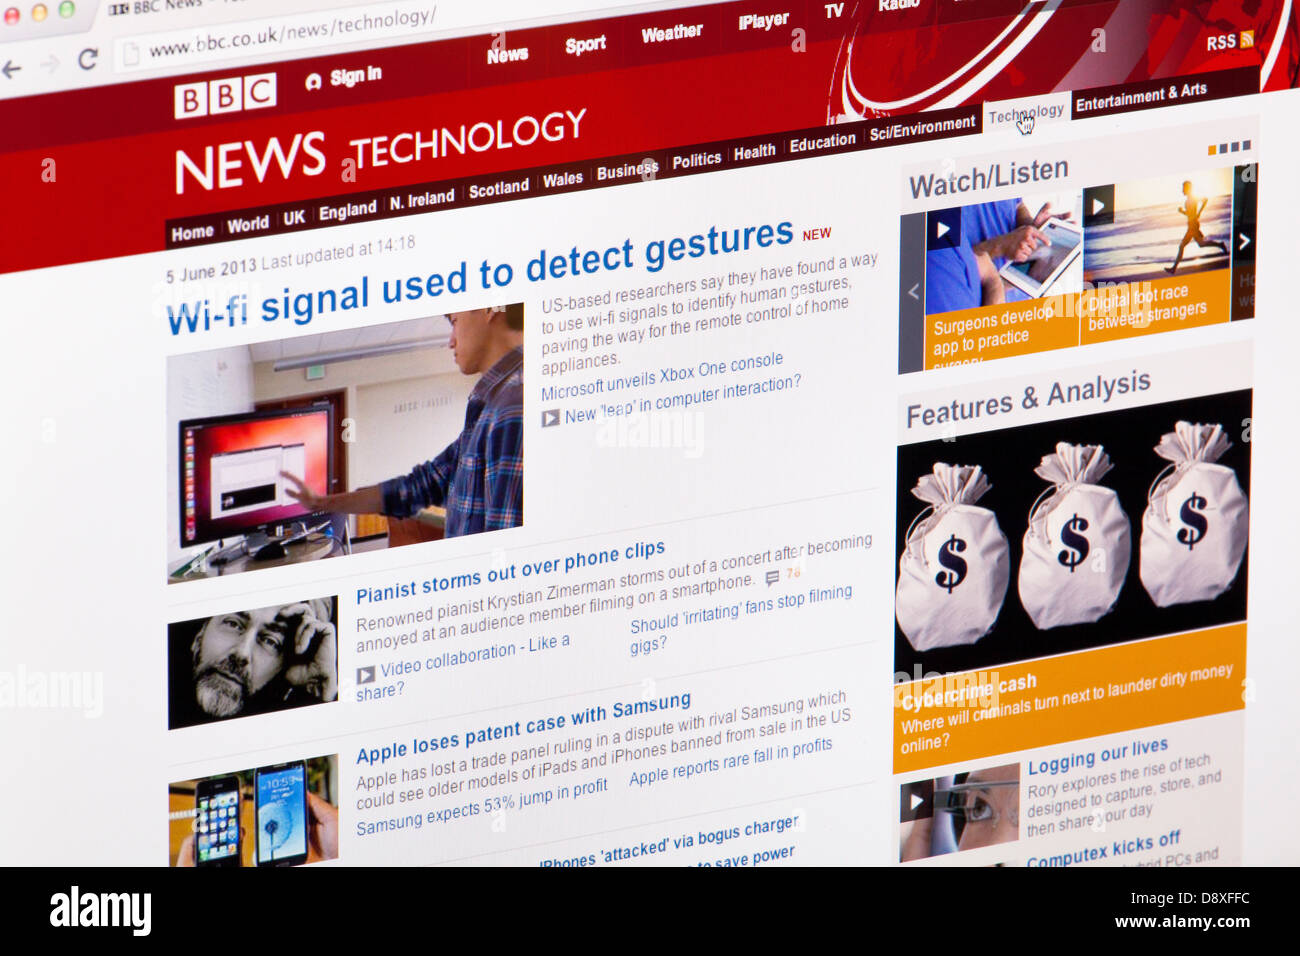 BBC News Technology home page website or web page on a laptop screen or computer monitor - Stock Image